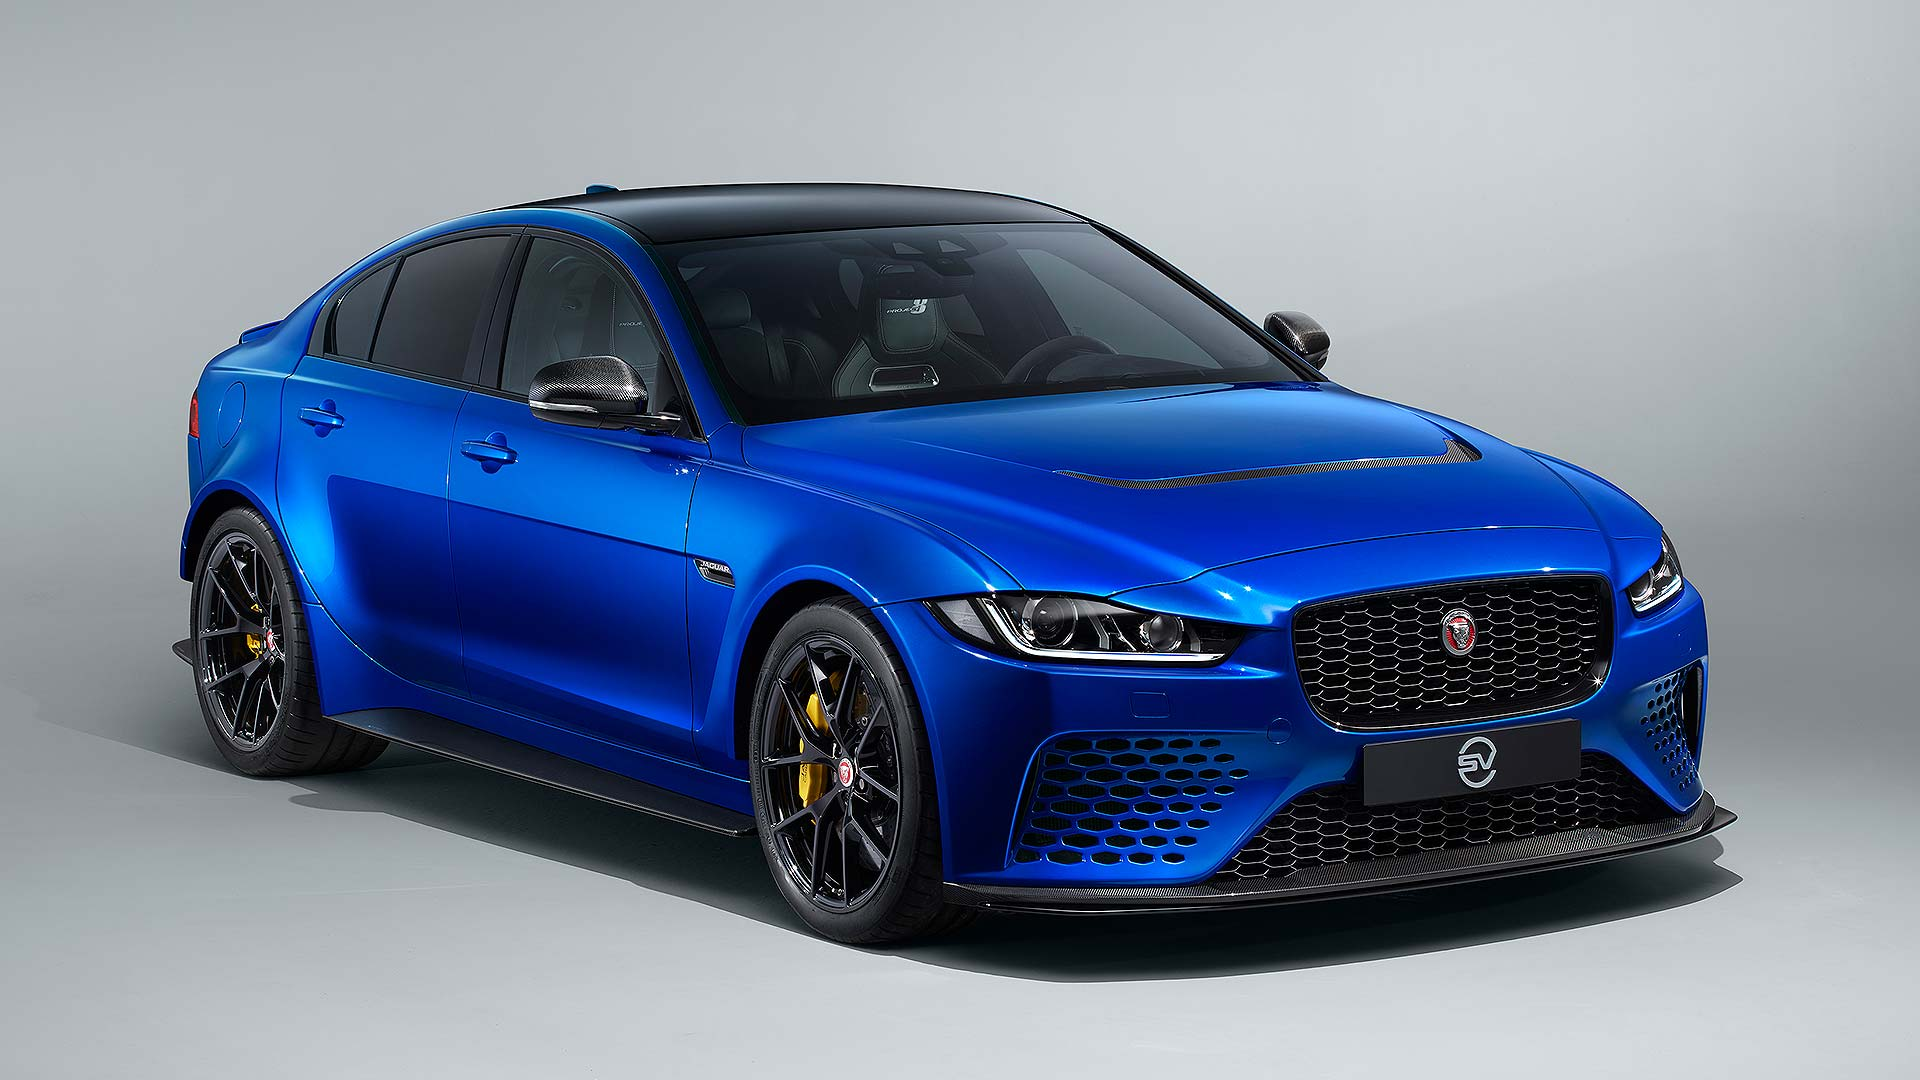 Jaguar XE SV Project 8 Touring is a Q-car collectable